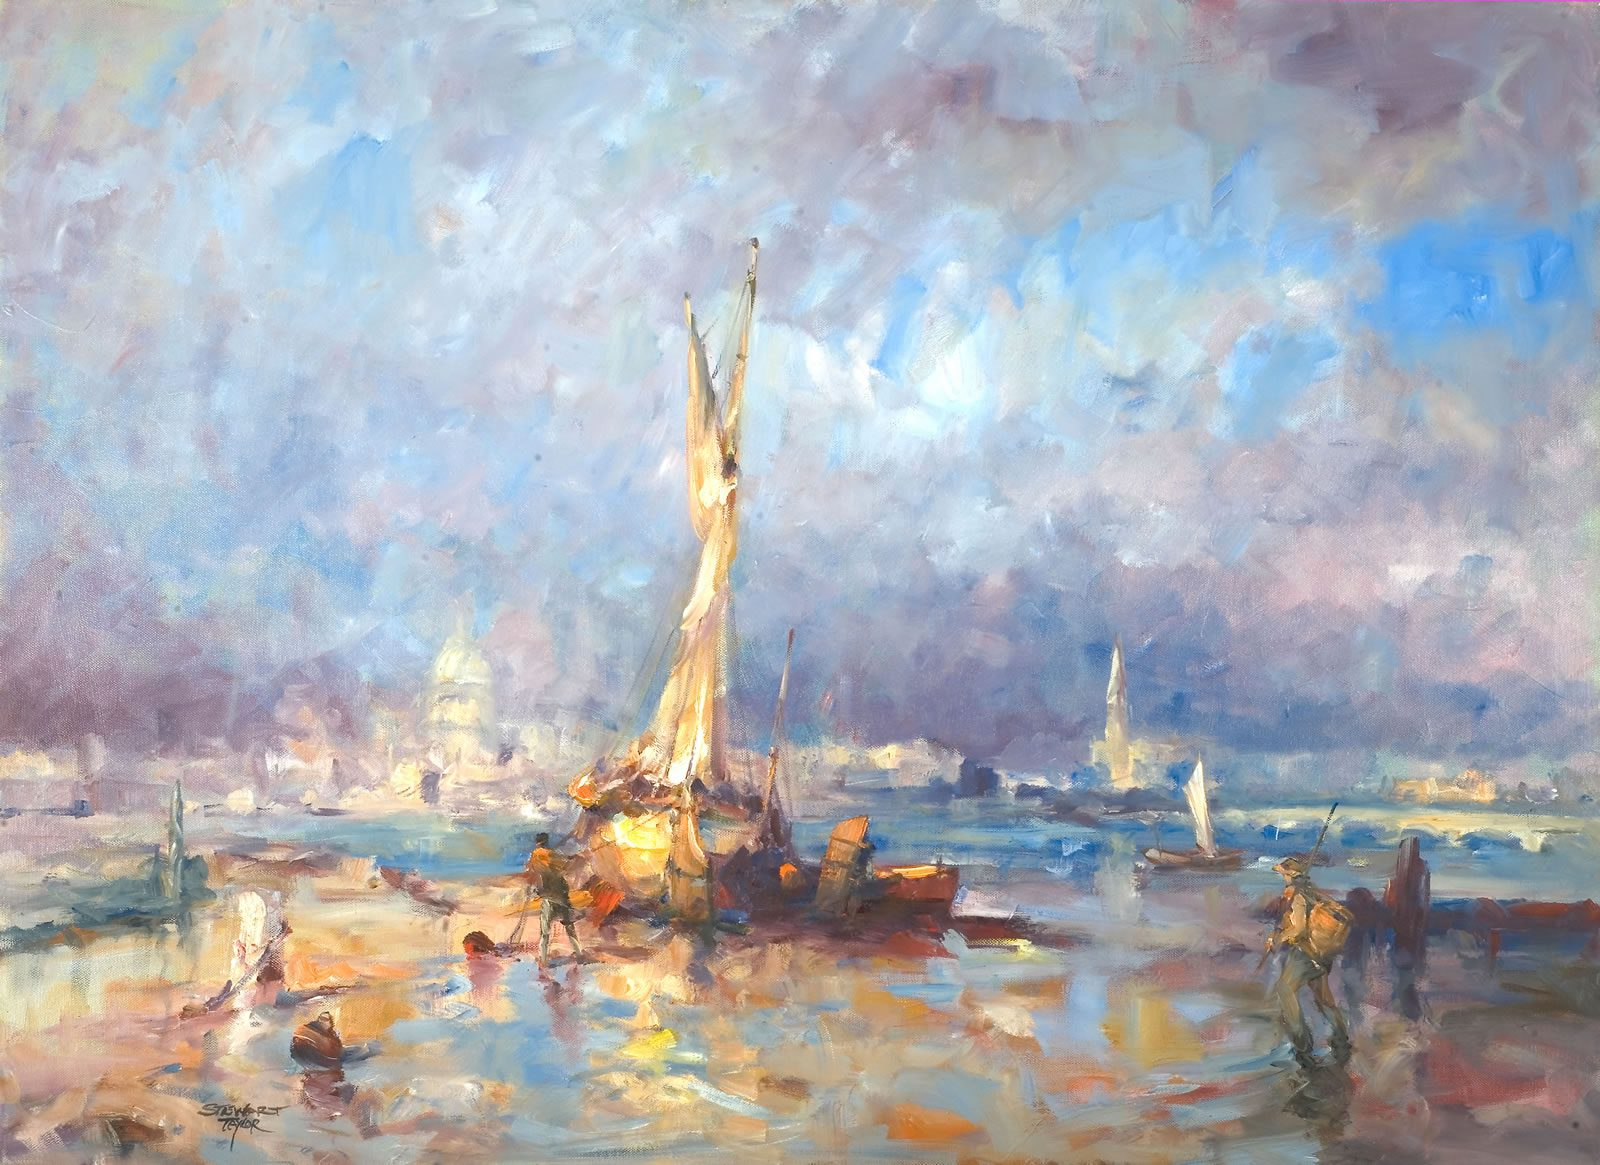 Oil painting of sailboats in the golden evening light